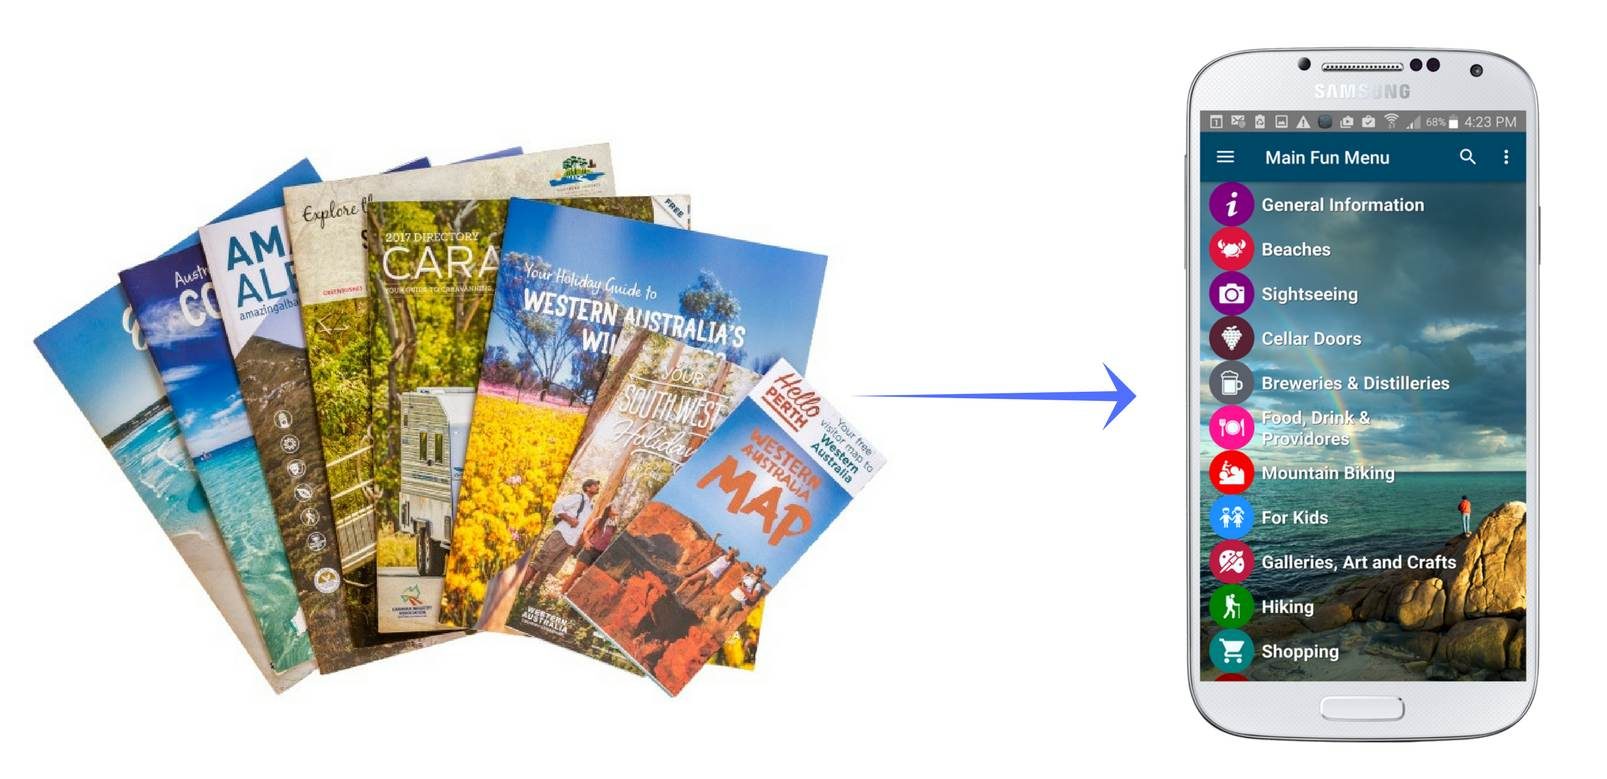 Loads of printed materials can be put into one App. That's environmentally friendly!